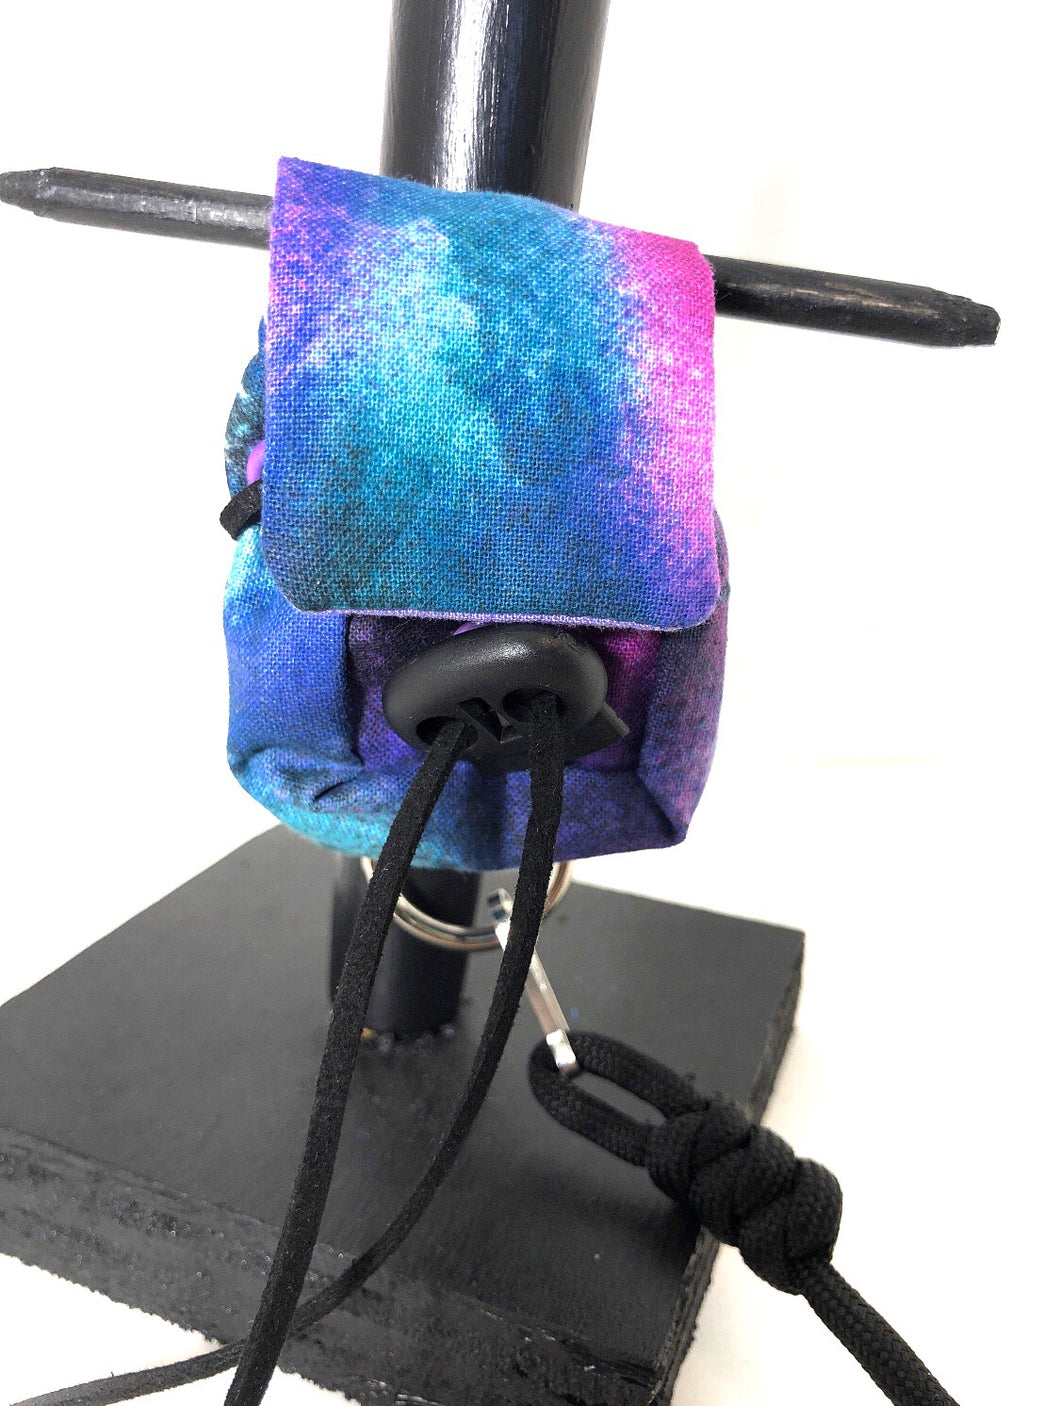 Blue and purple tie dye backpack  harness